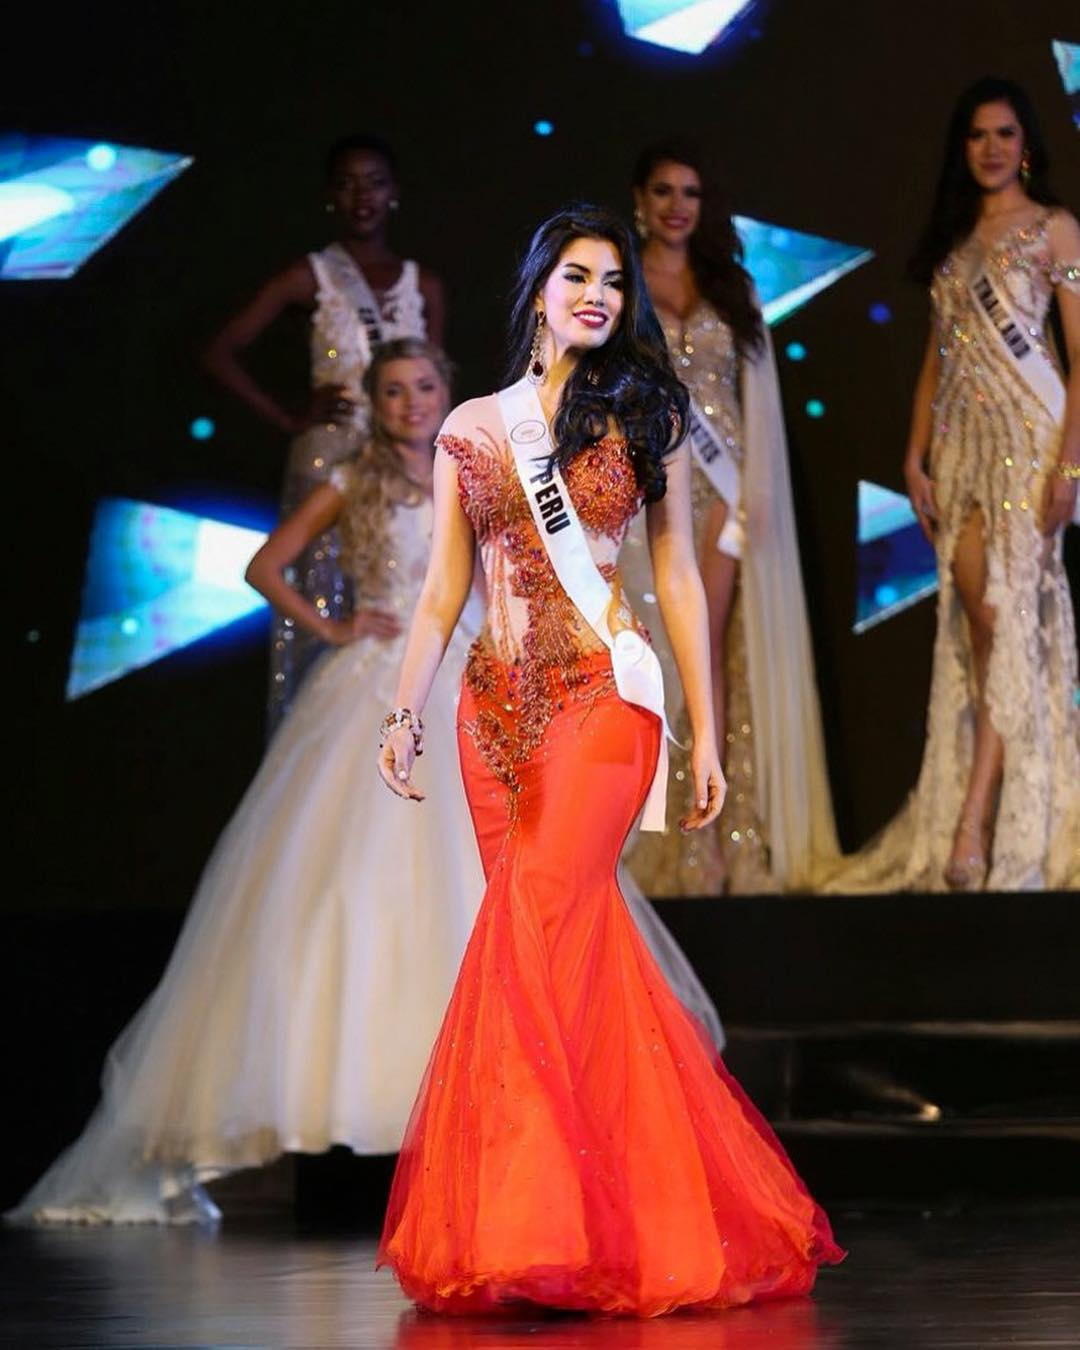 samantha batallanos, 3rd runner-up de miss landscapes international 2018. - Página 2 36147910